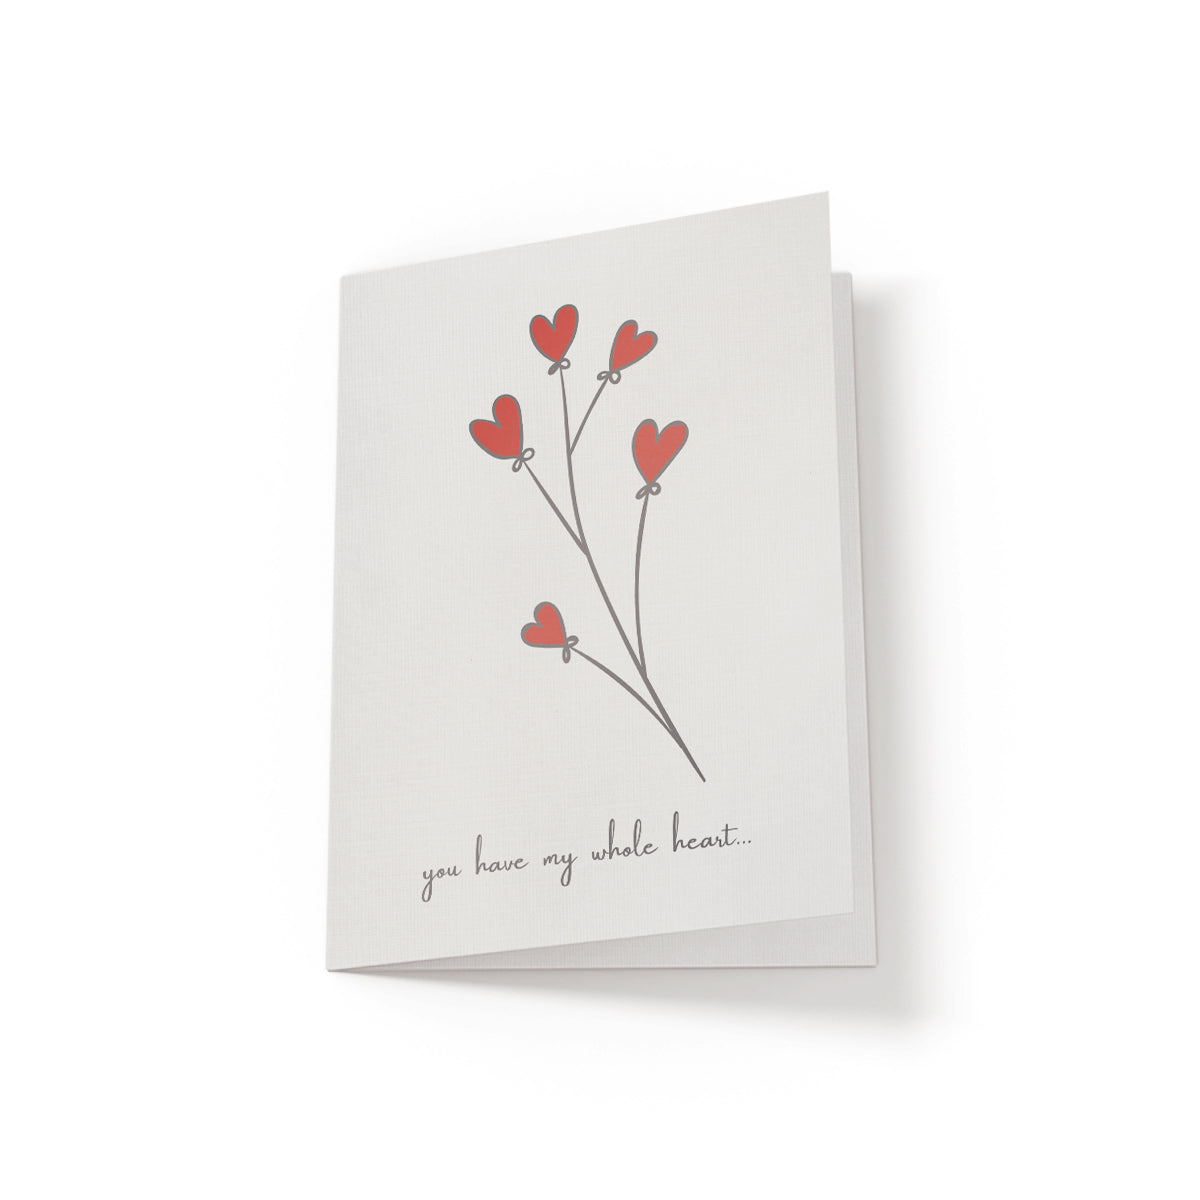 You have my whole heart - Greeting Card